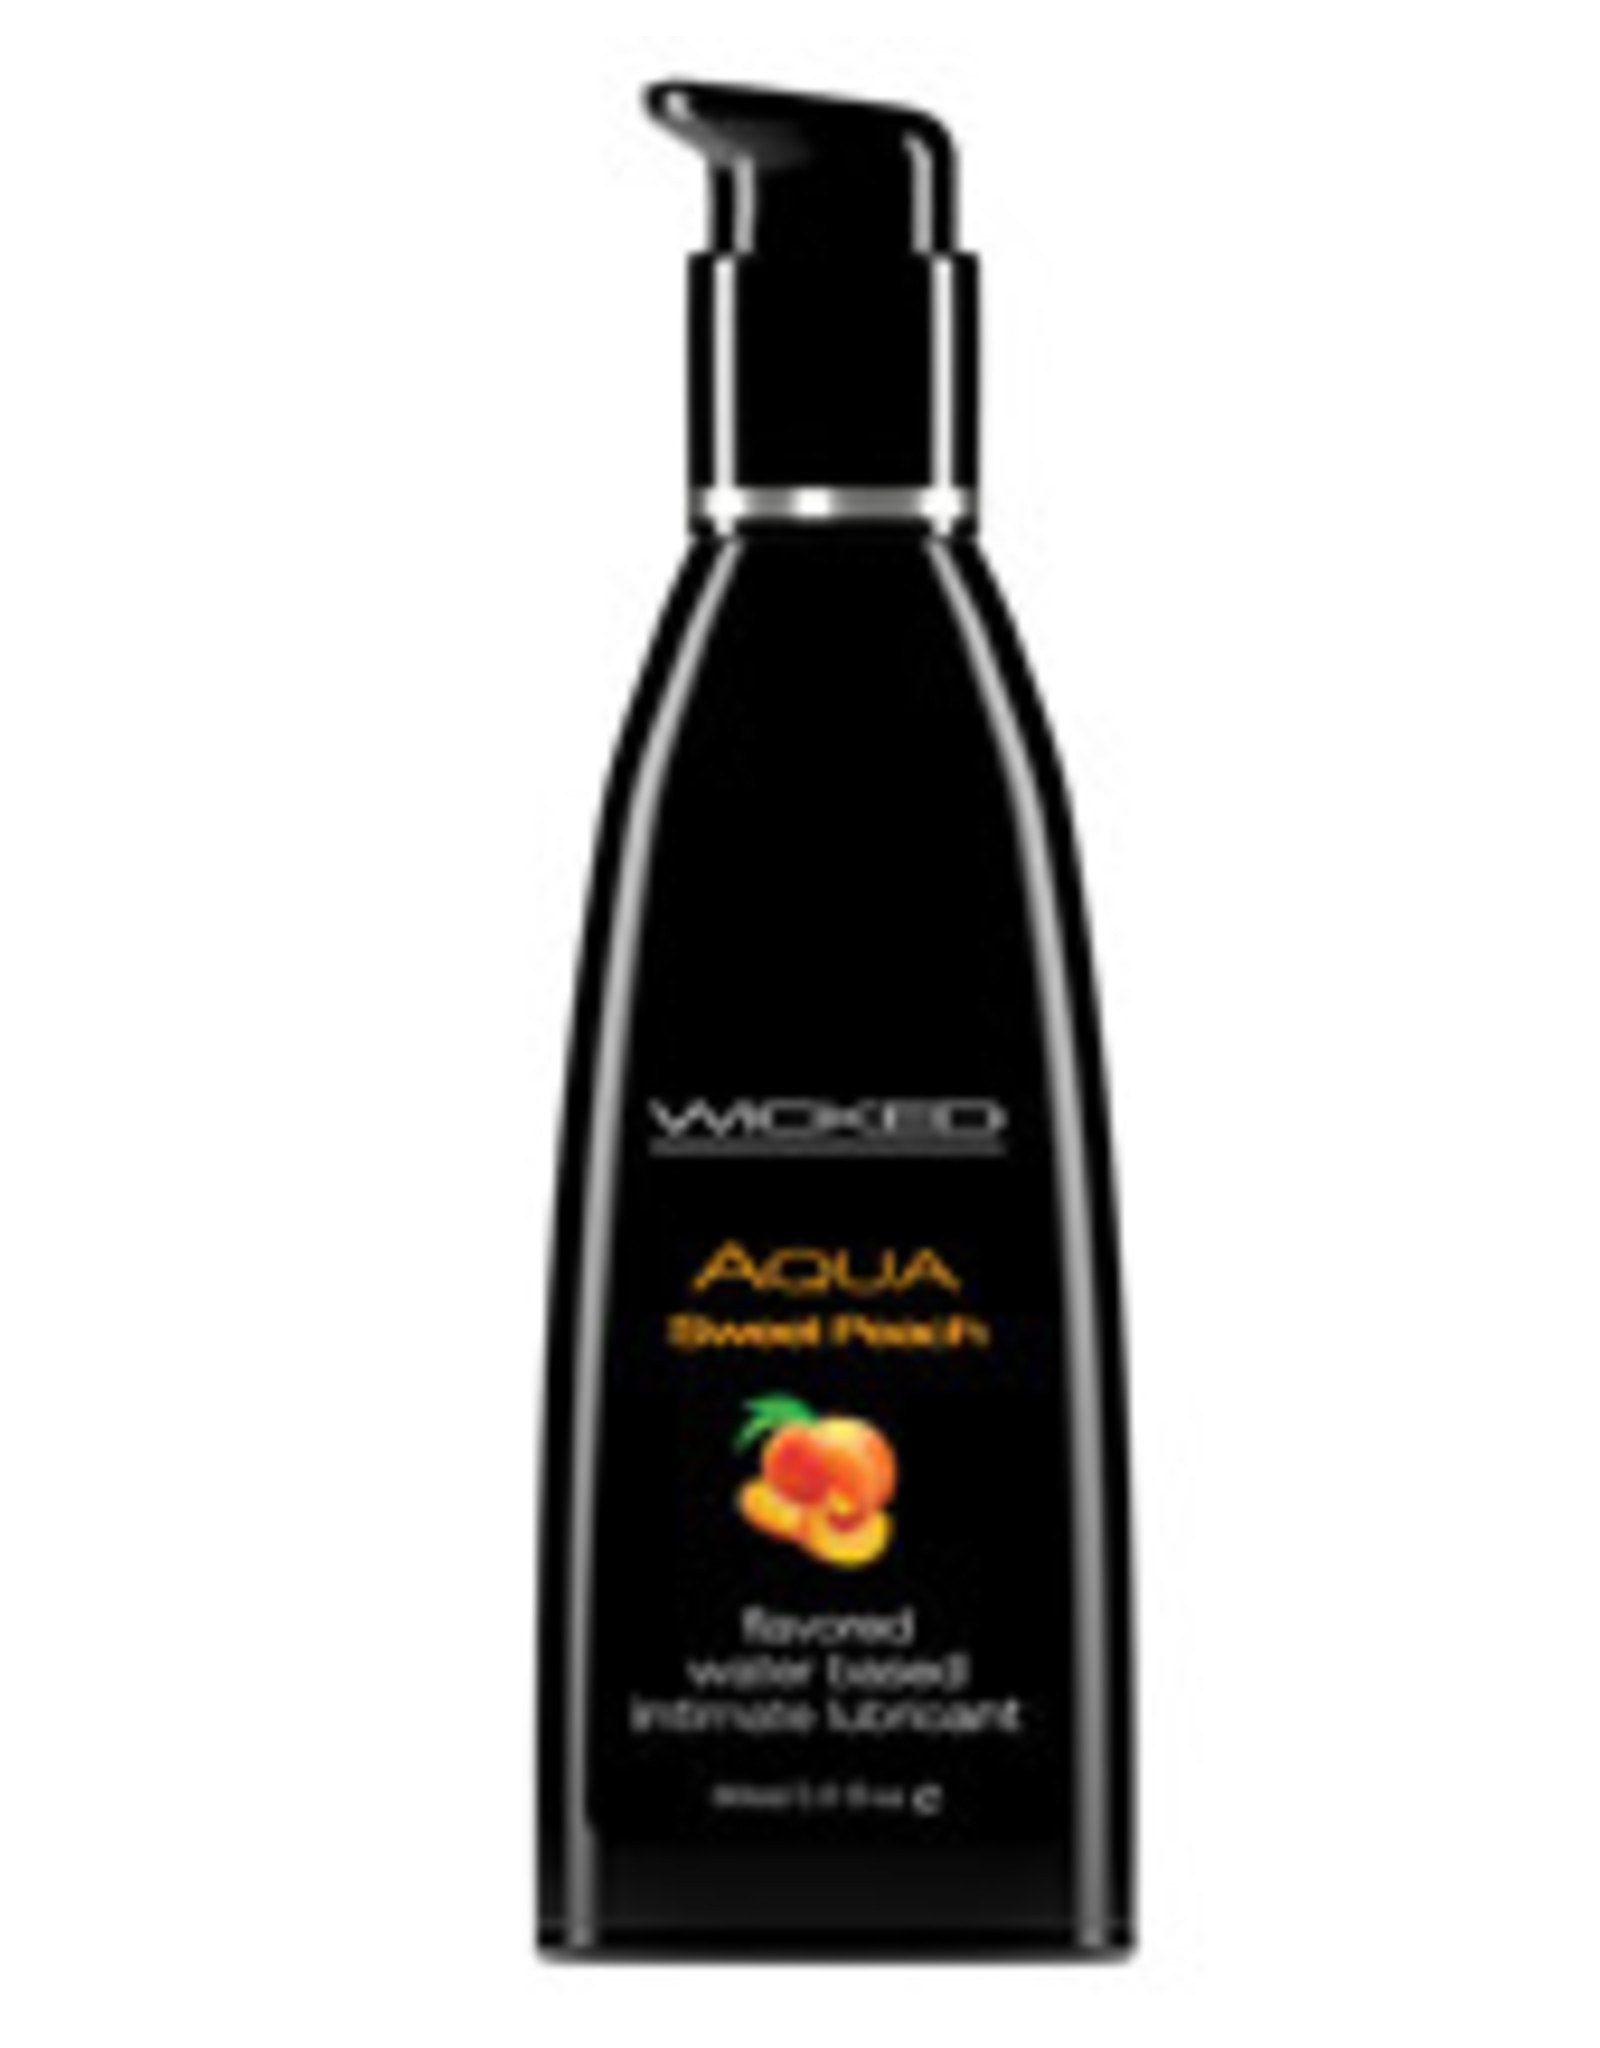 Wicked Sensual Care Water Based Lubricant - 2 oz Sweet Peach